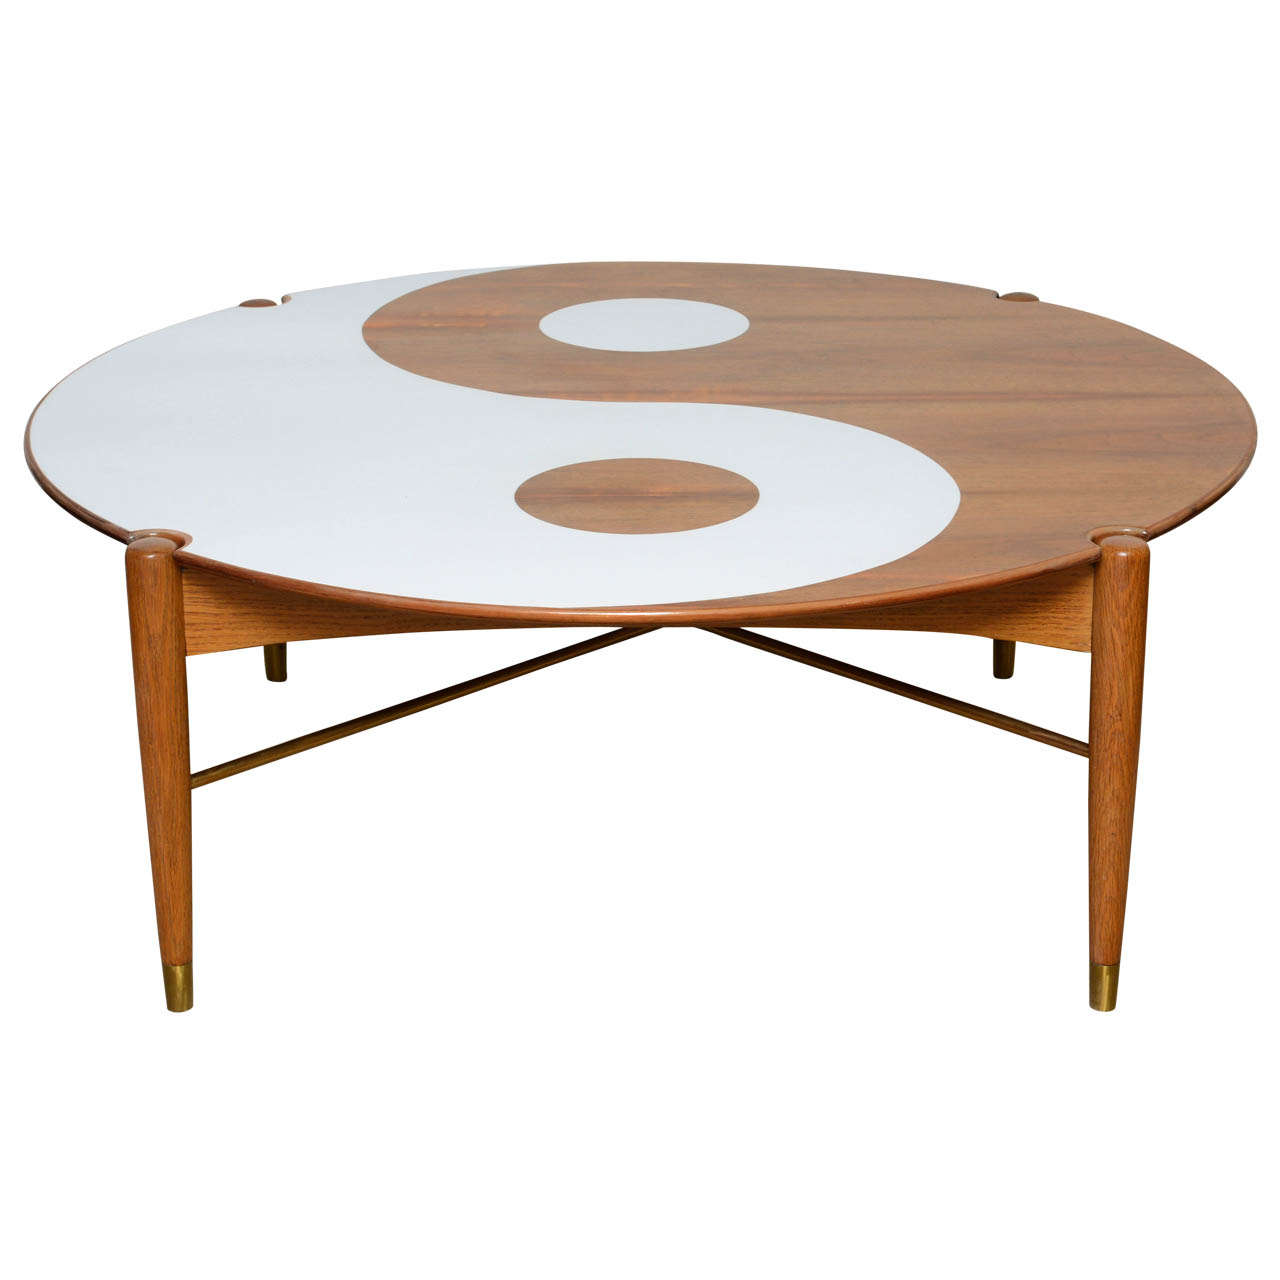 Yin and yang mid century modern round walnut swedish coffee table for sale at 1stdibs Round coffee table modern